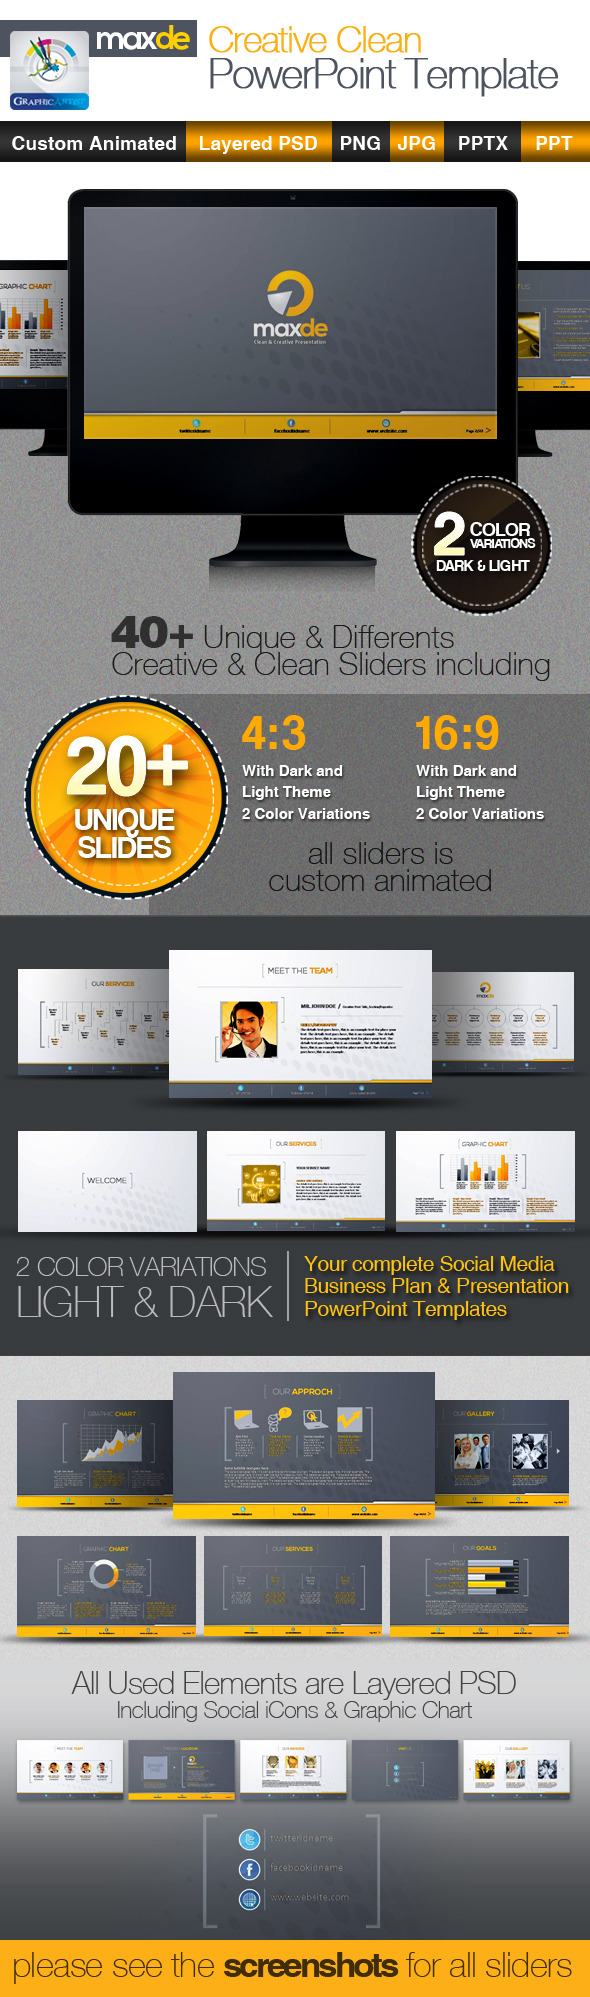 MaxDe Creative Clean PowerPoint Templates - Business Powerpoint Templates